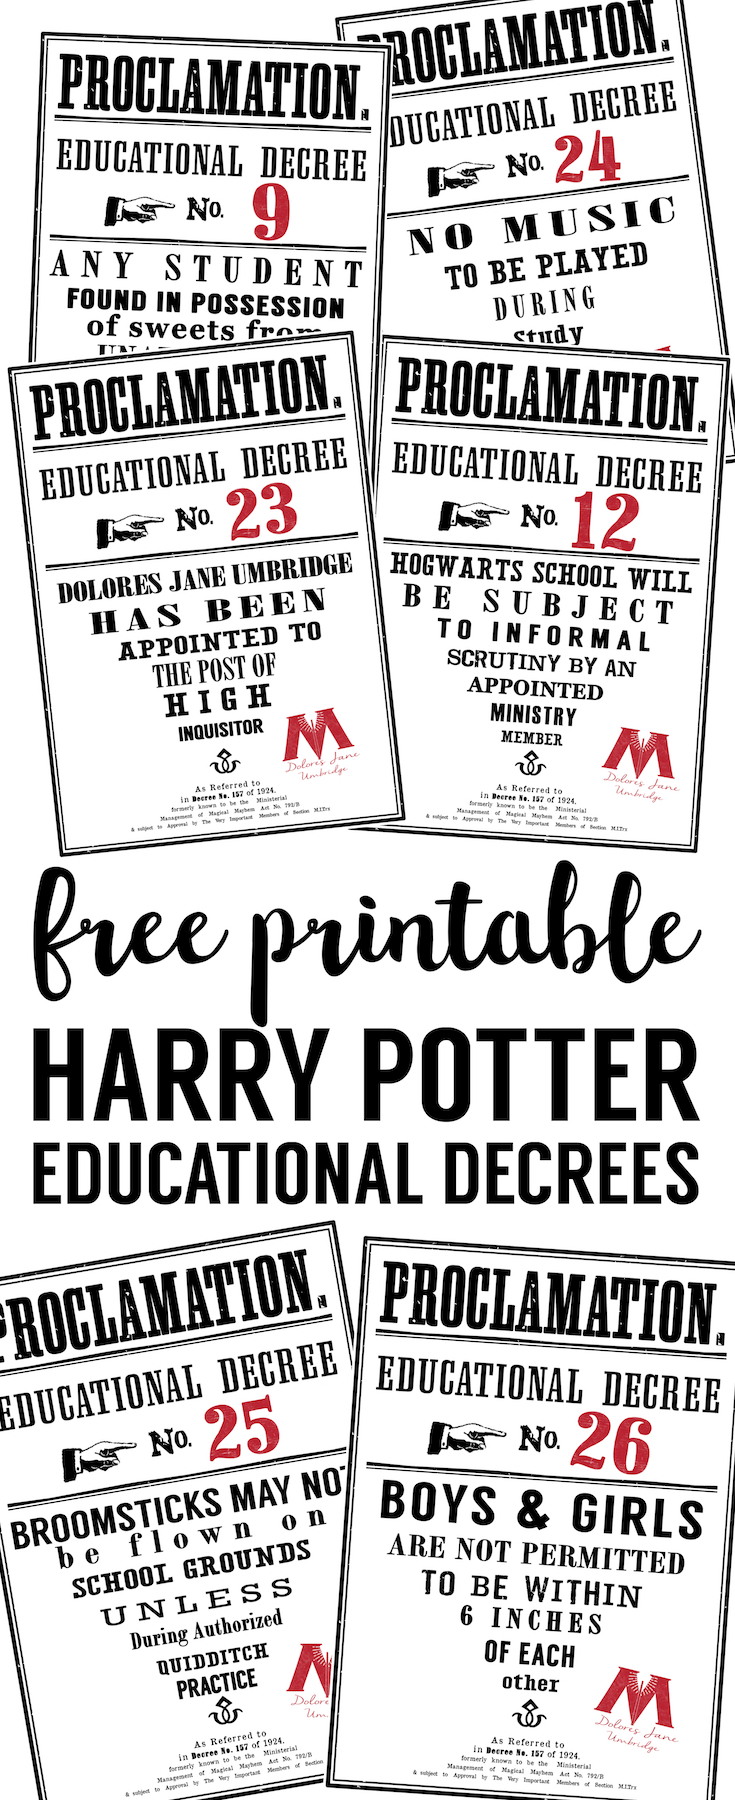 photo regarding Quibbler Printable titled Harry Potter Insightful Decrees totally free printables - Paper